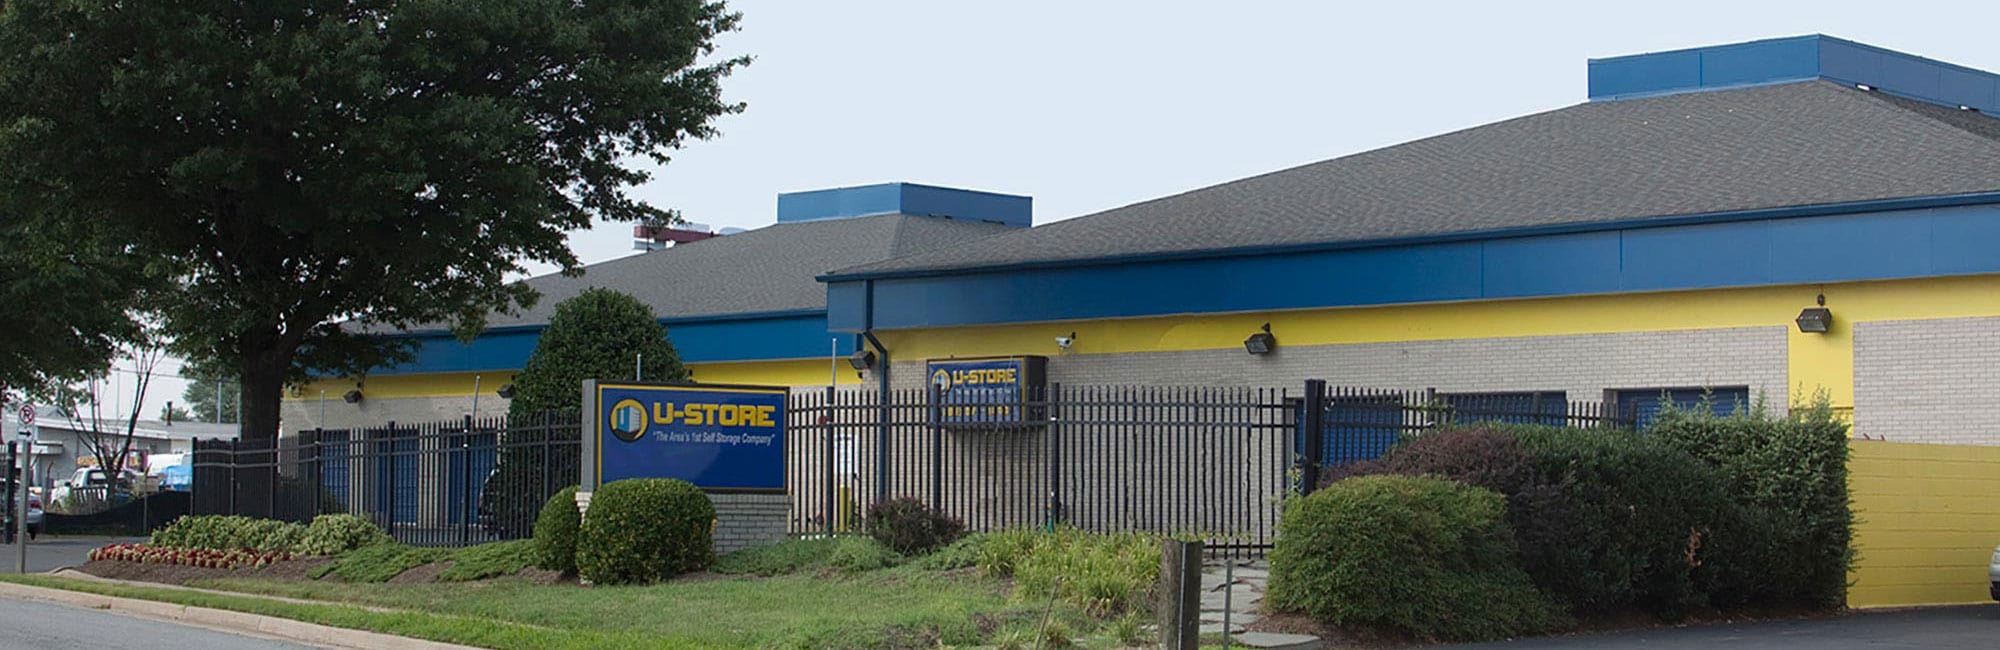 Self storage in Falls Church VA